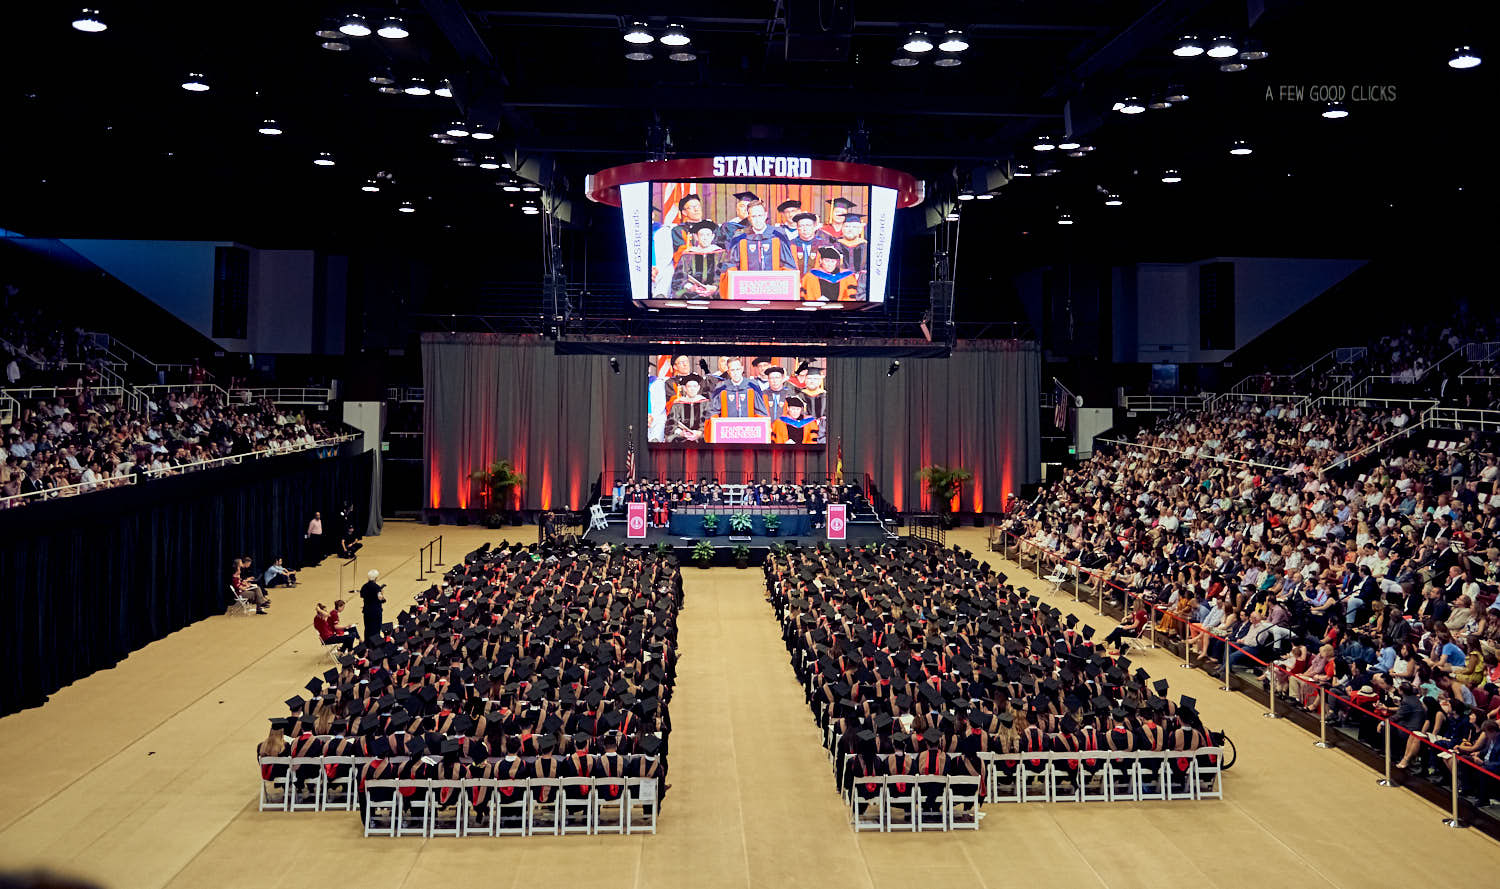 2018 Graduation day ceremony held at Maples Pavilion, Stanford university.